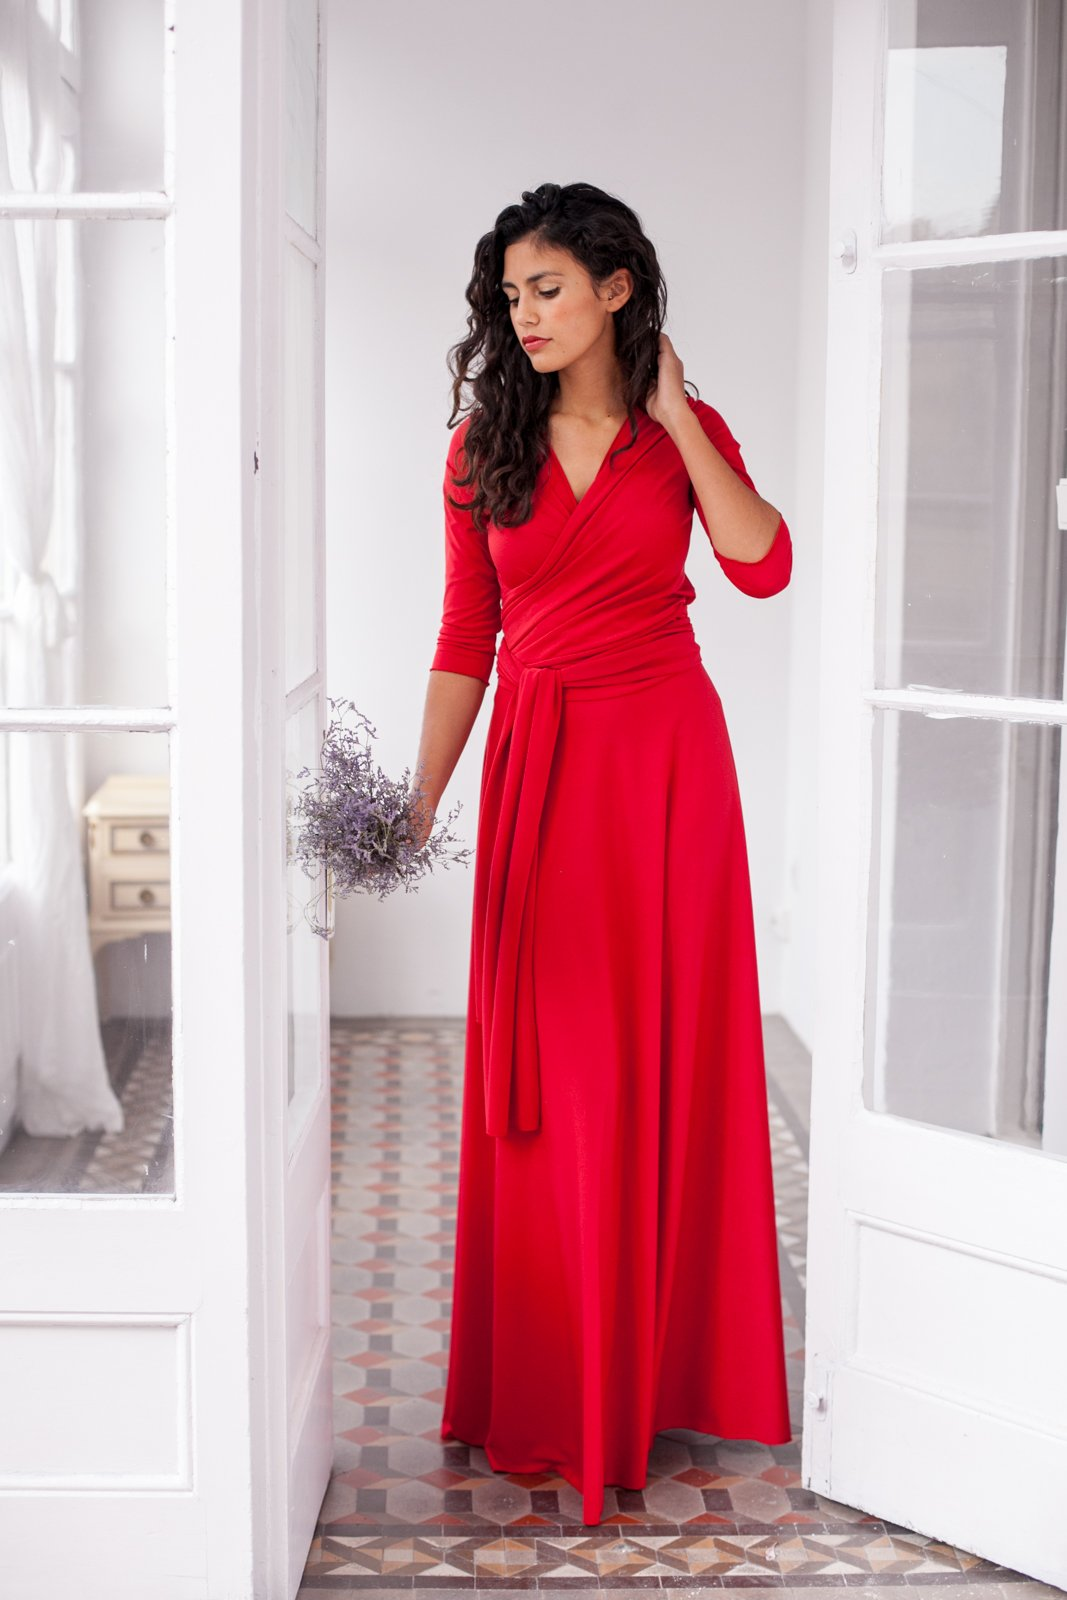 Long red multi way dress with sleeves, long red maxi dress, red convertible long sleeve dress, red waist tie dress, satin red infinity dress by Mimètik Bcn